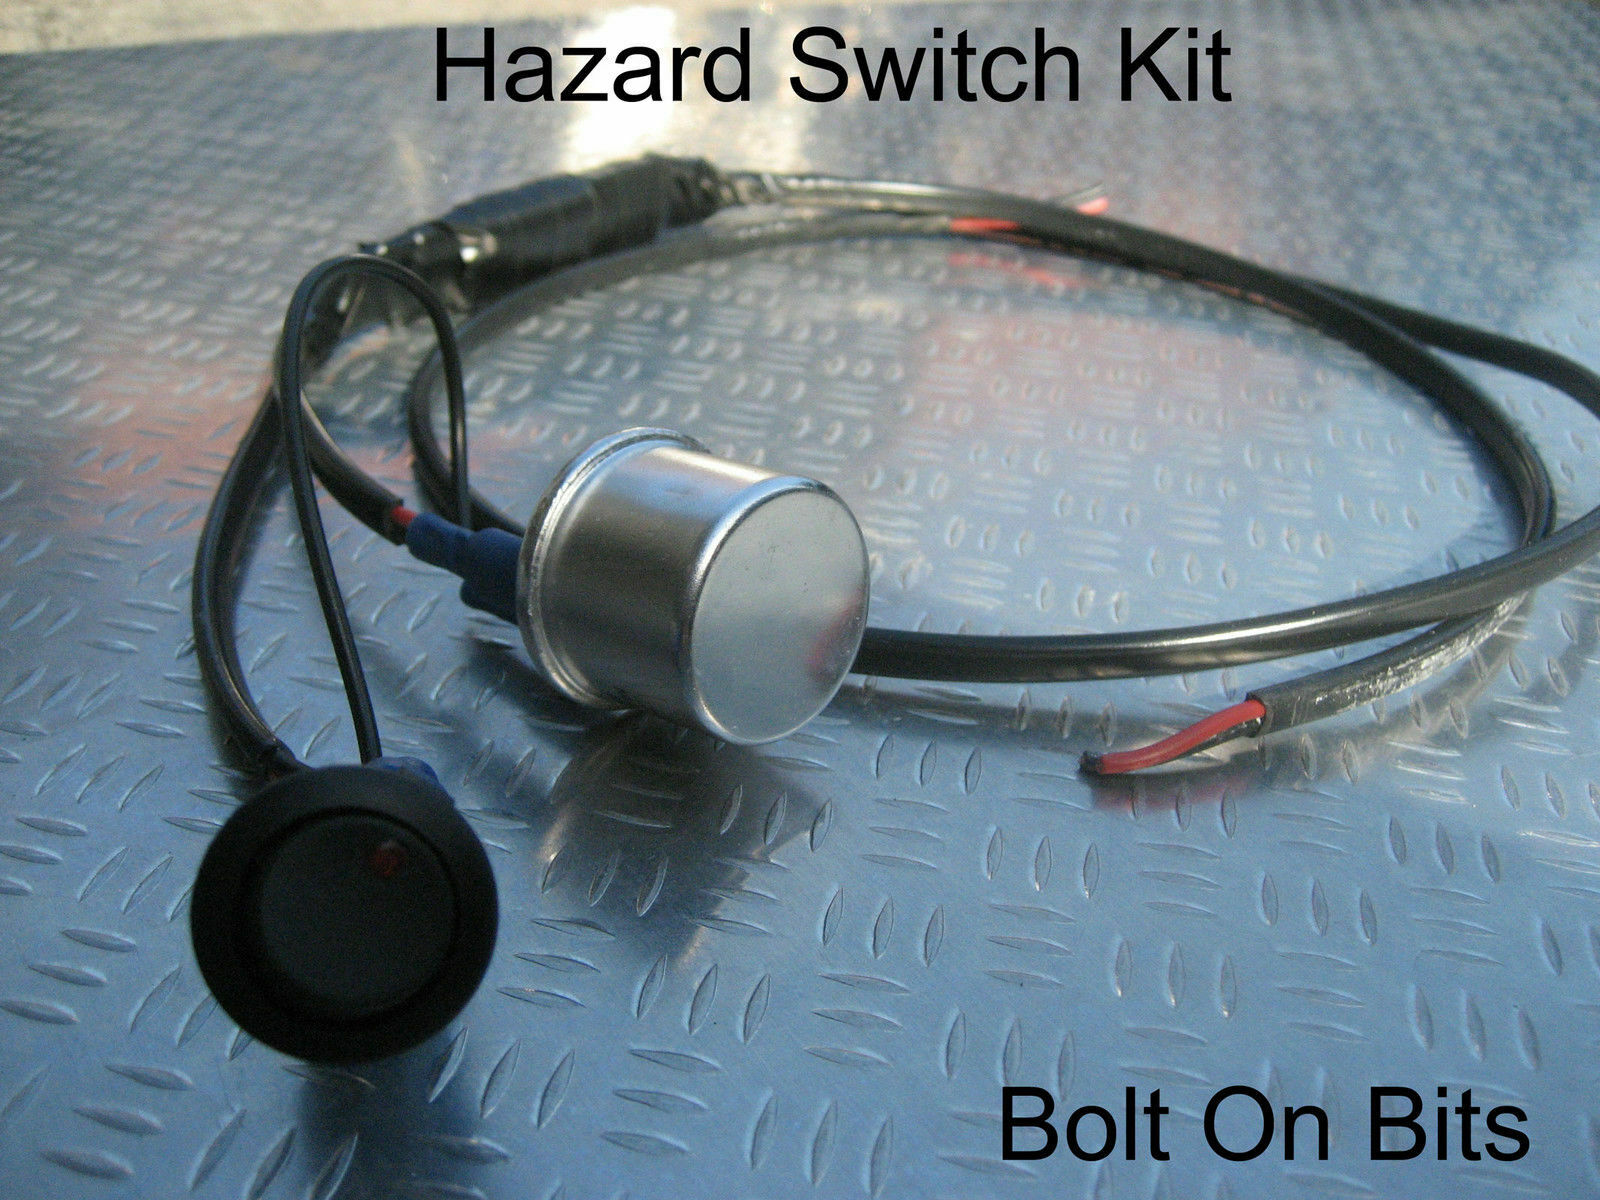 Hazard Flasher Relay Red Warning Switch Wiring Kit Trike Kitcar A Indicator 1 Of 1only 0 Available